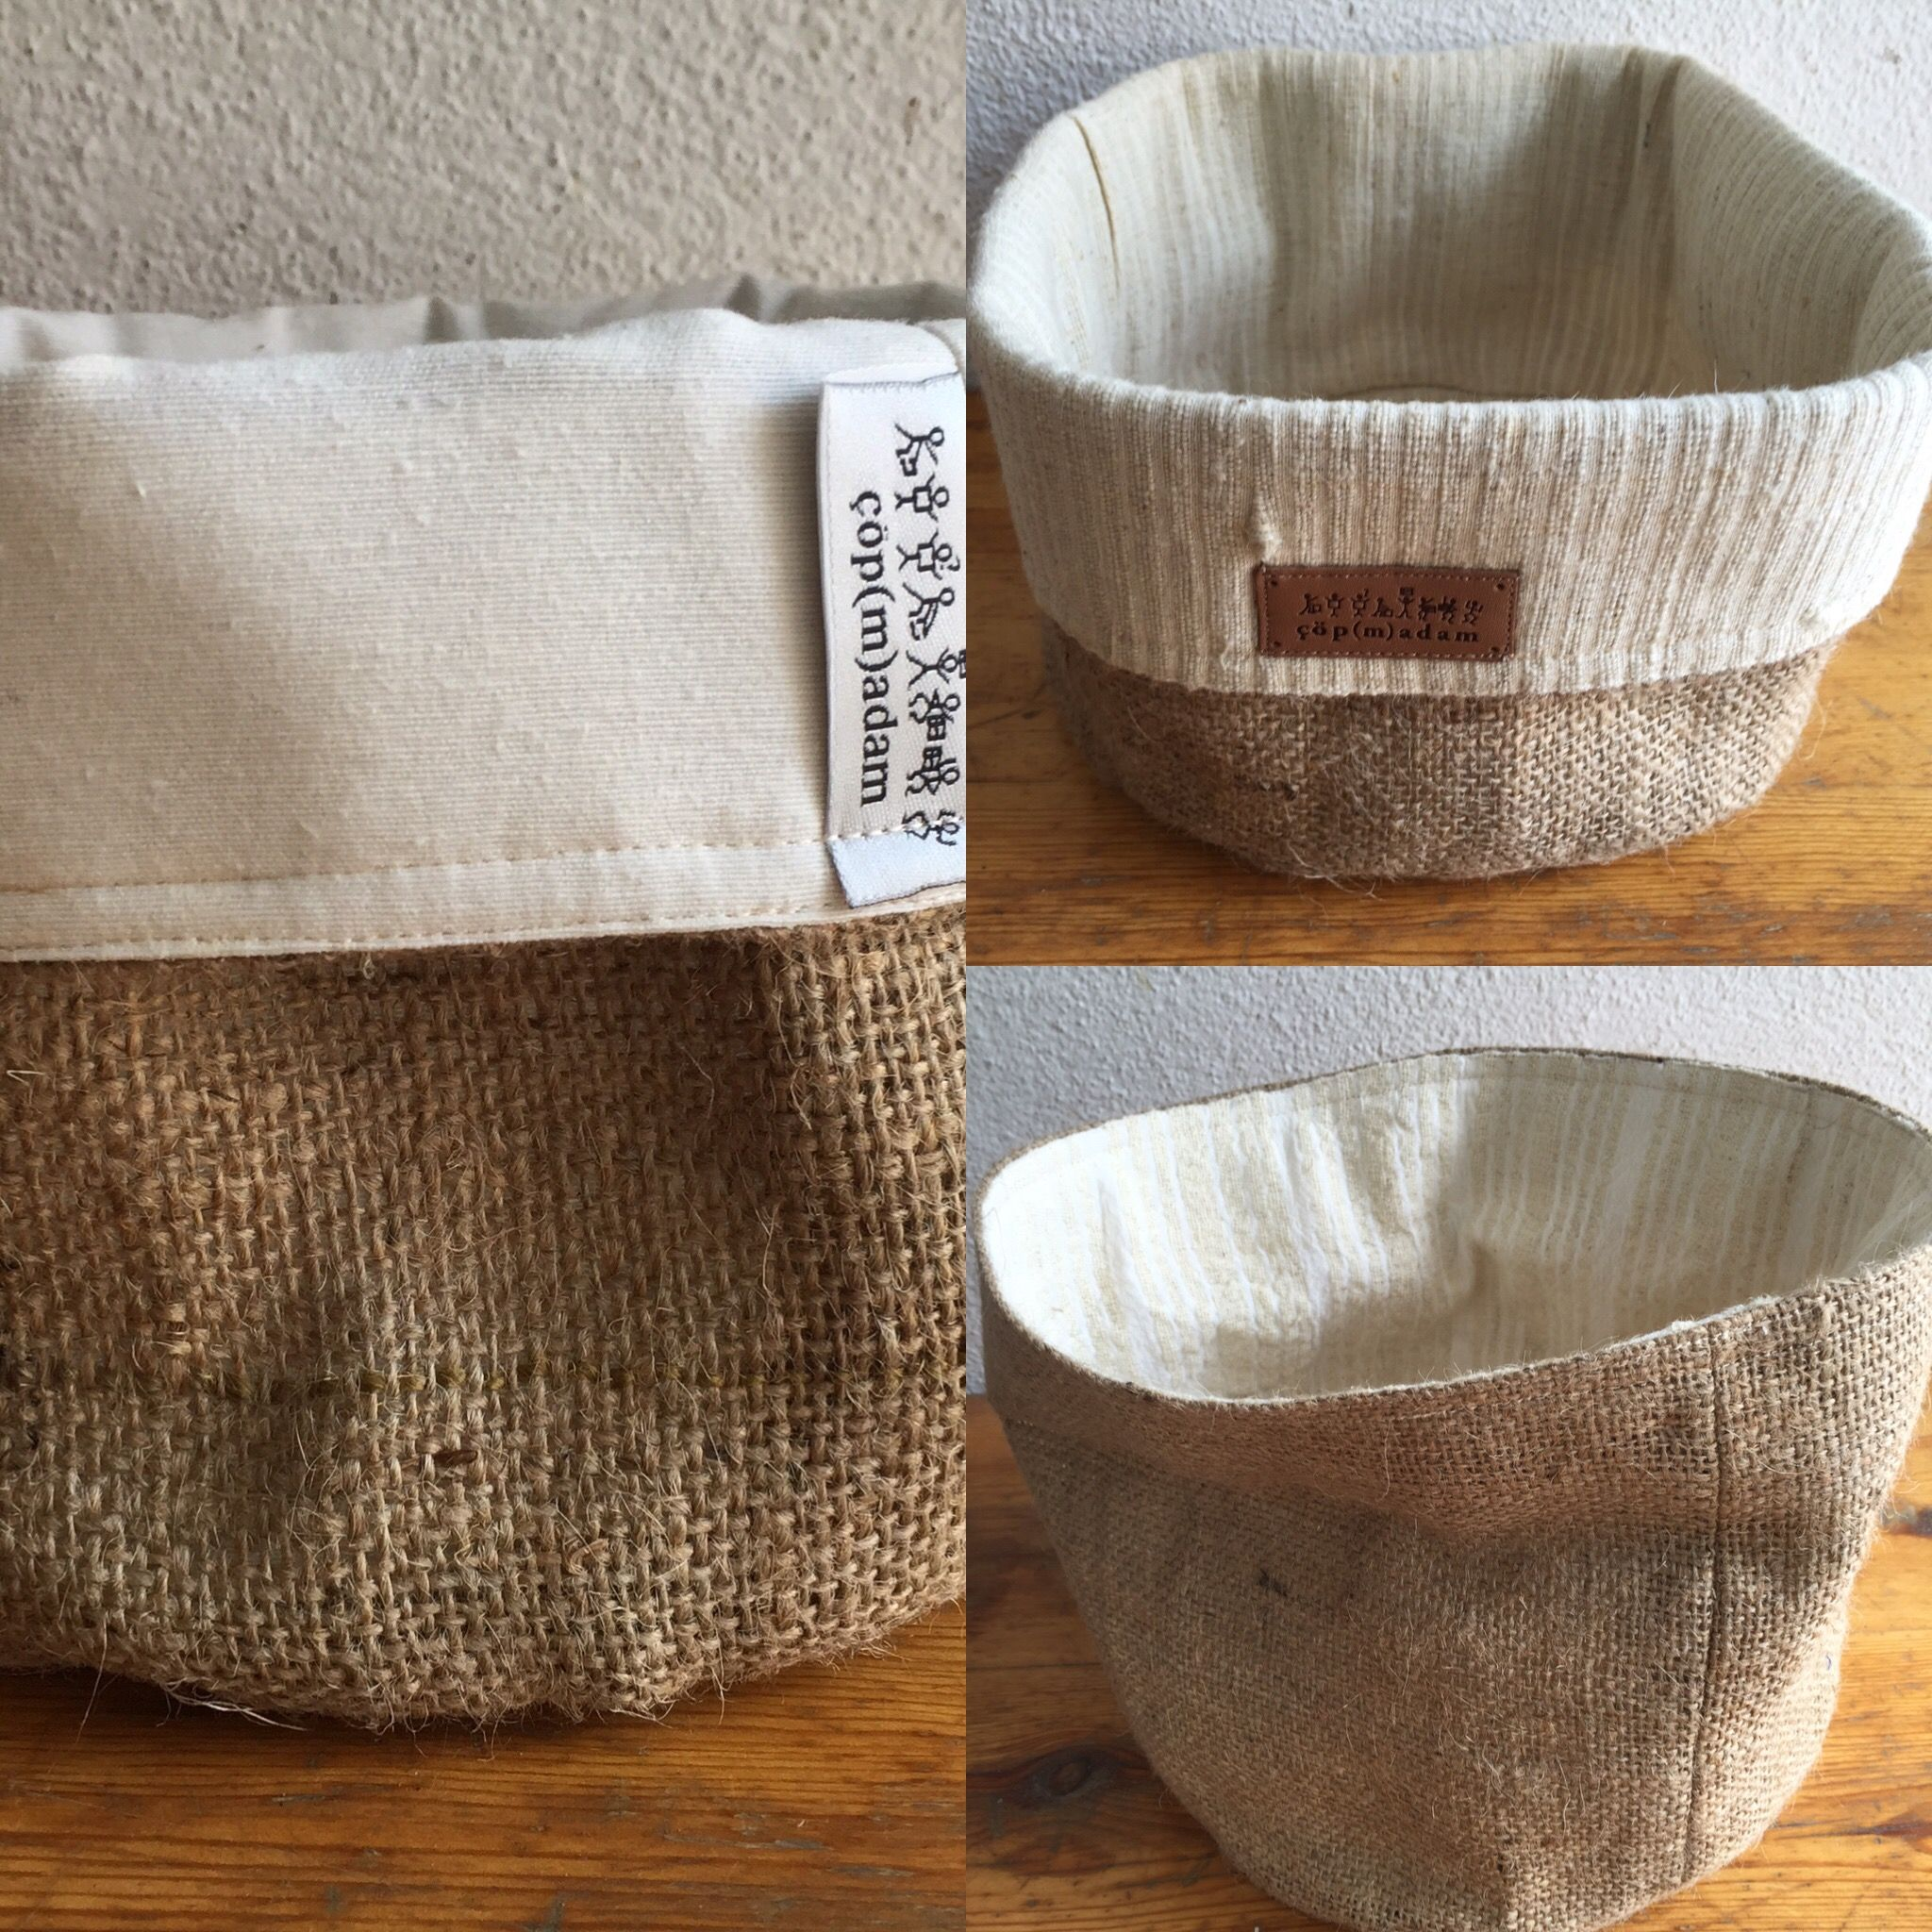 Coffee or olive burlap sacks with hand-loomed or grain sack or scrap fabric, 45tl/15 euros